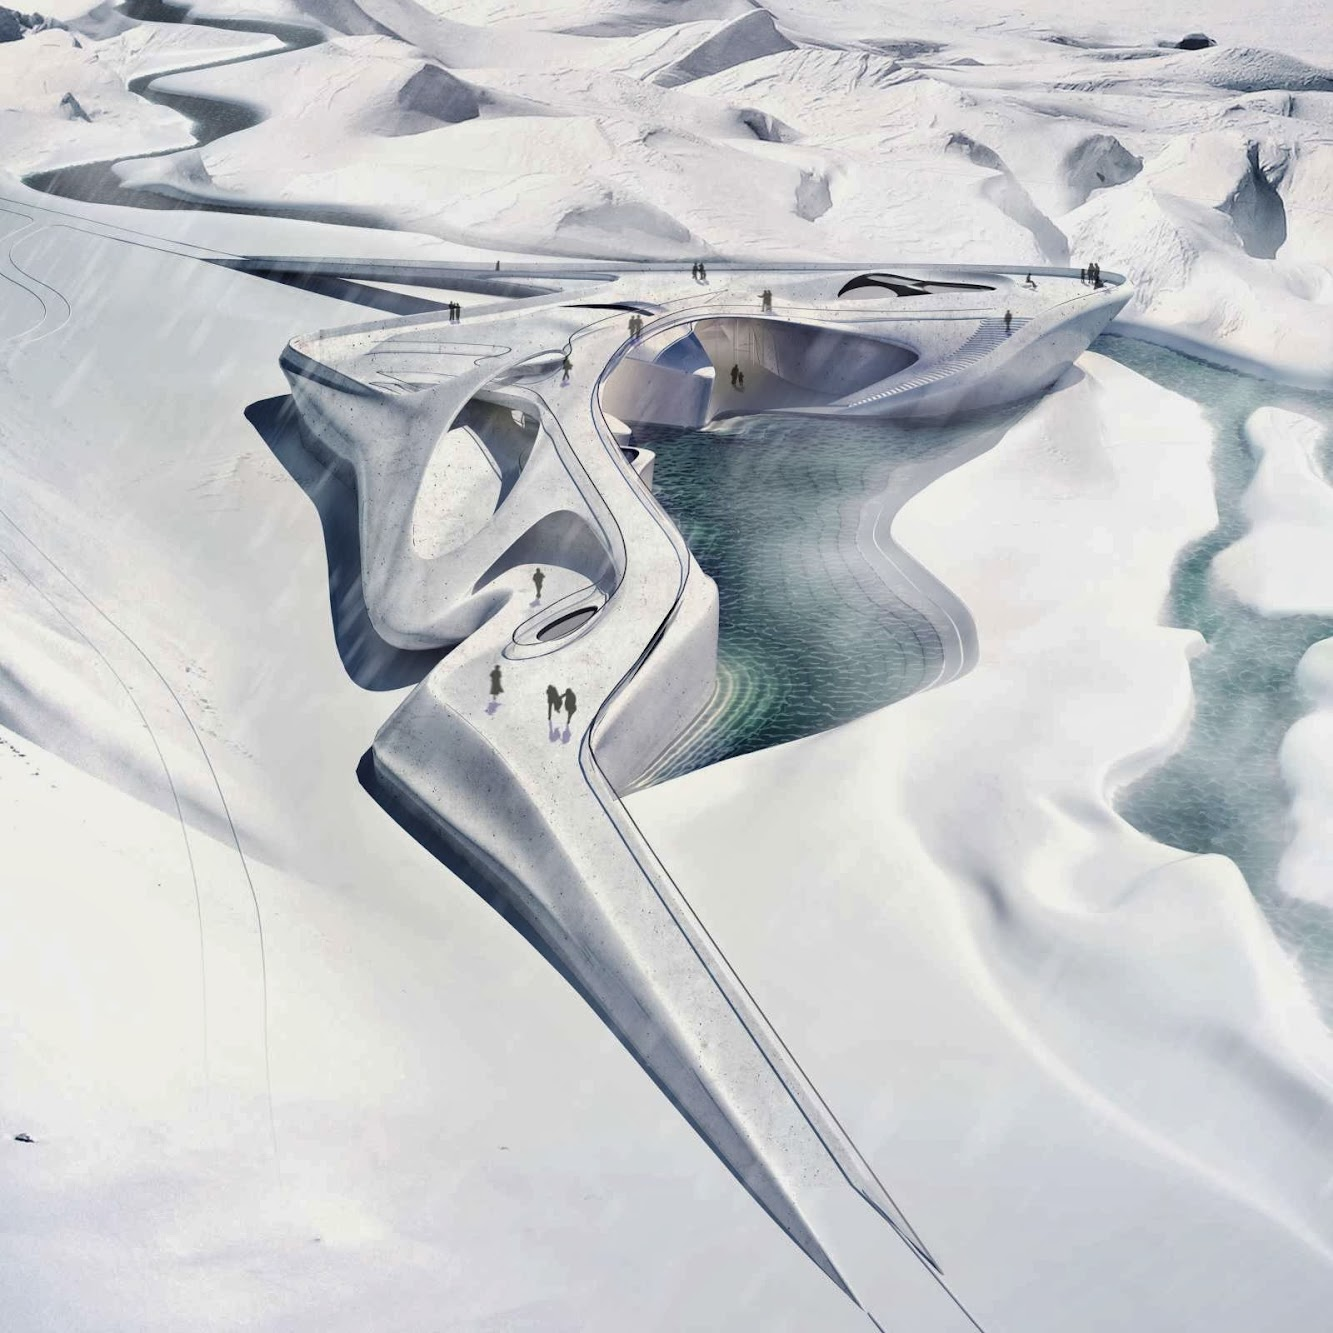 Ghiacciaio del Rodano, 3999 Oberwald, Svizzera: Center For Glaciology by Matthias SÜTTERLIN